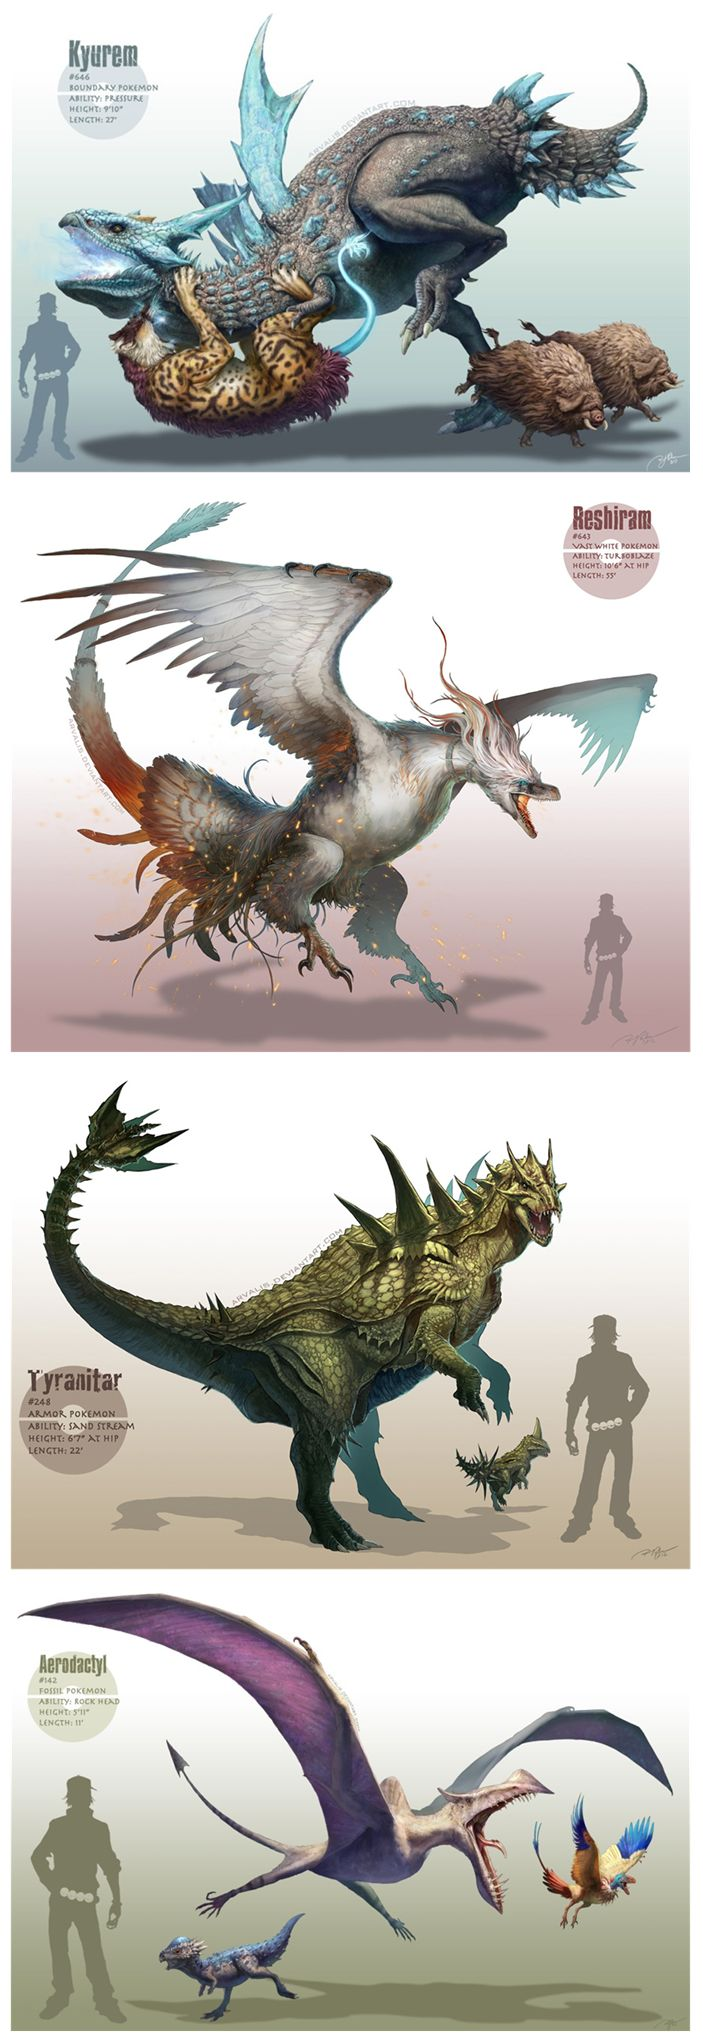 25+ Best Ideas about Pokemon Realistic on Pinterest | Real ...